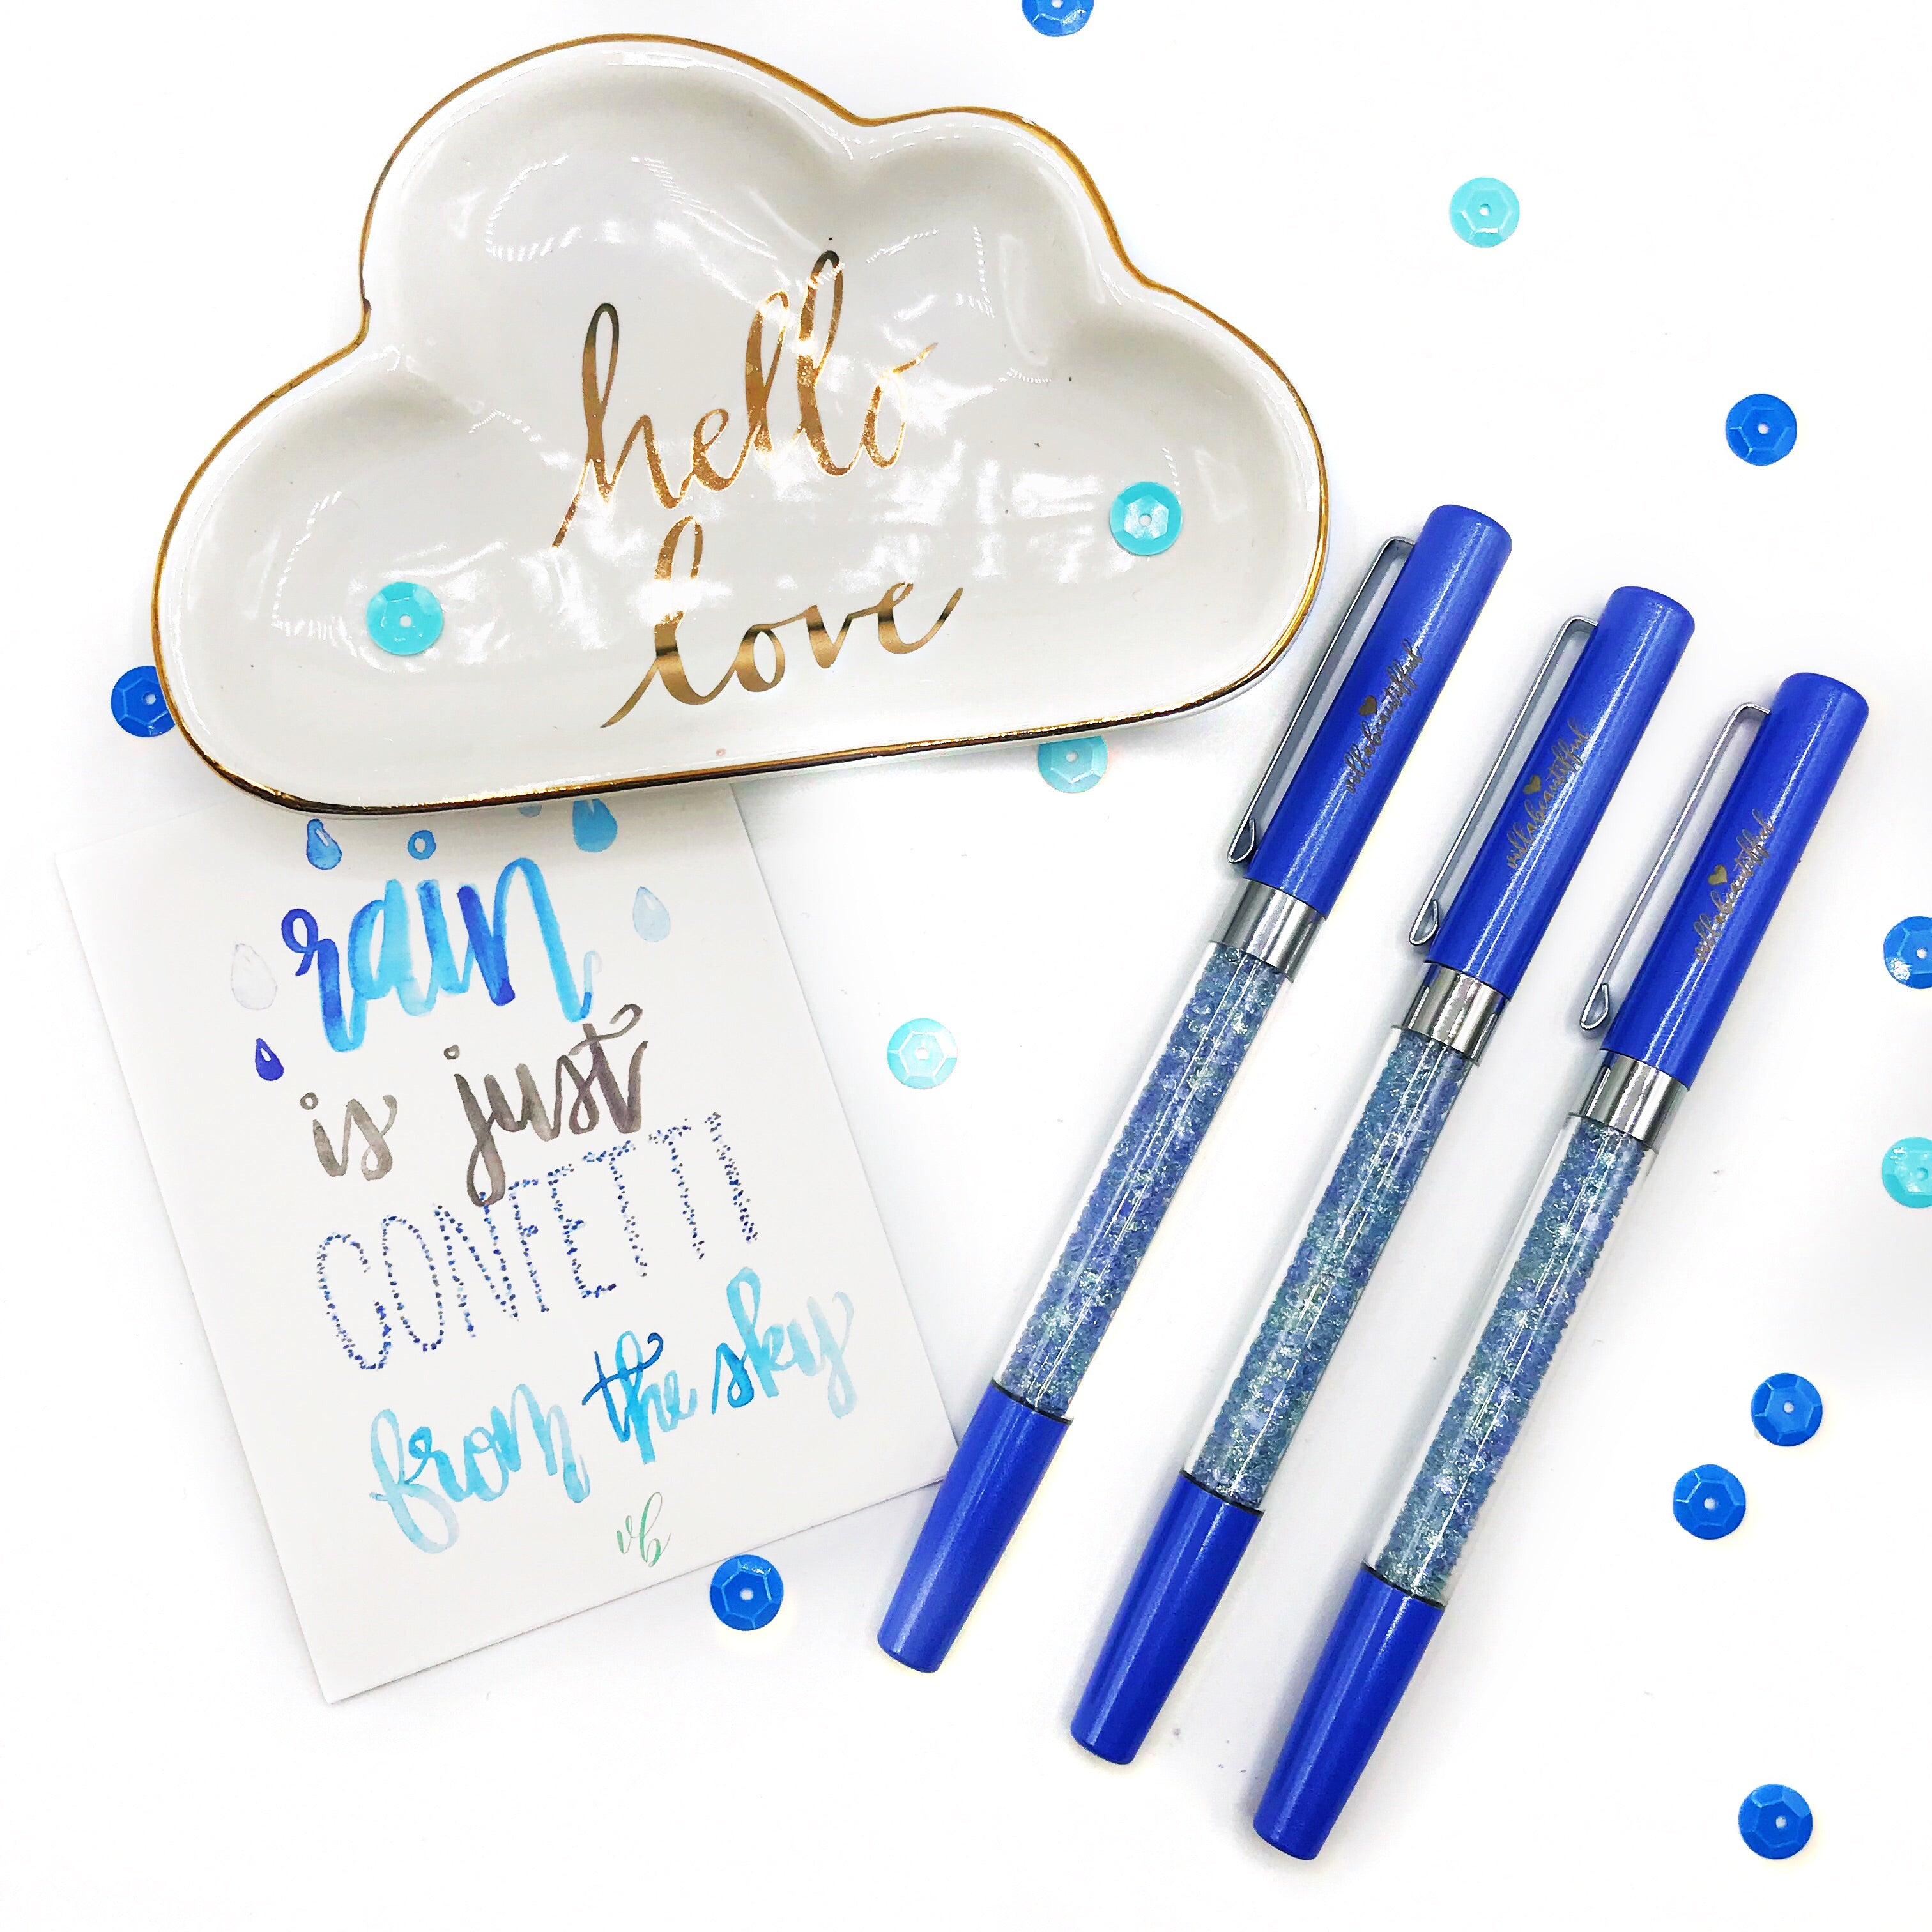 Rainy Days Crystal VBPen | limited